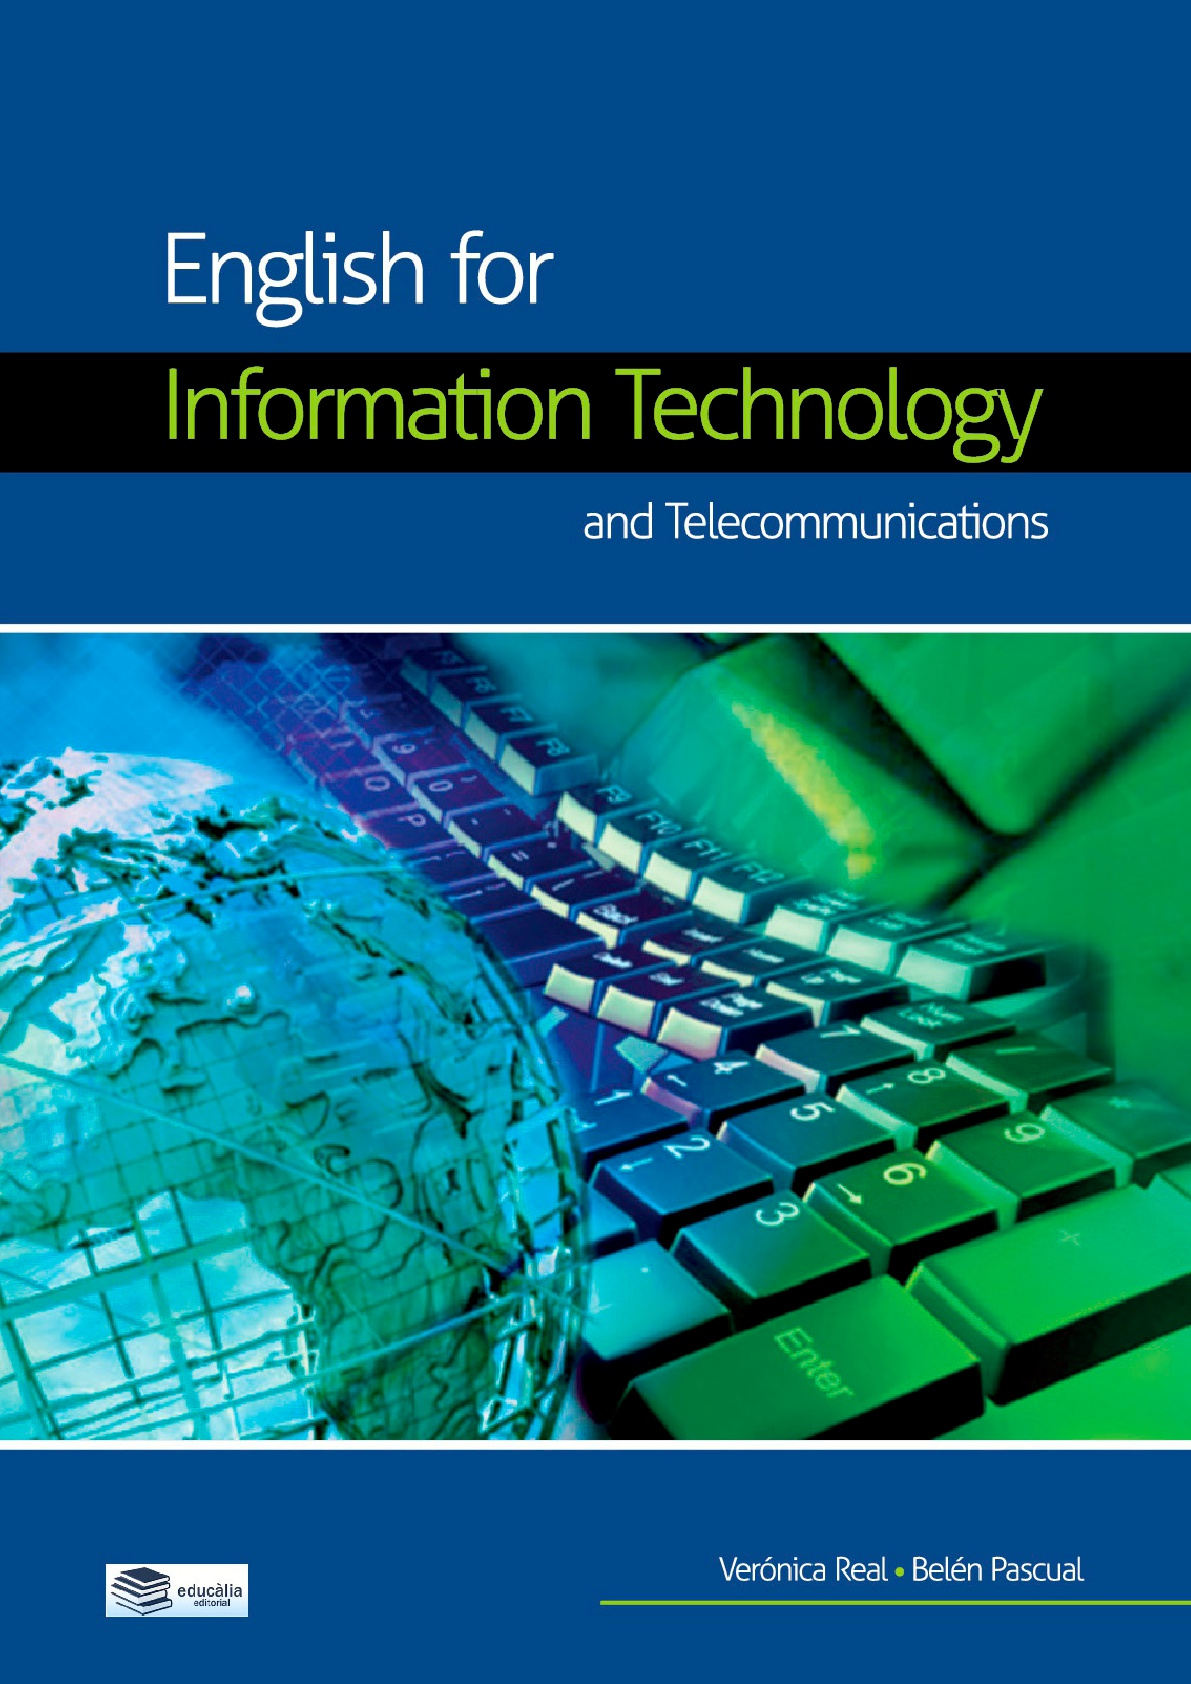 English for Information Technology and Telecommunications